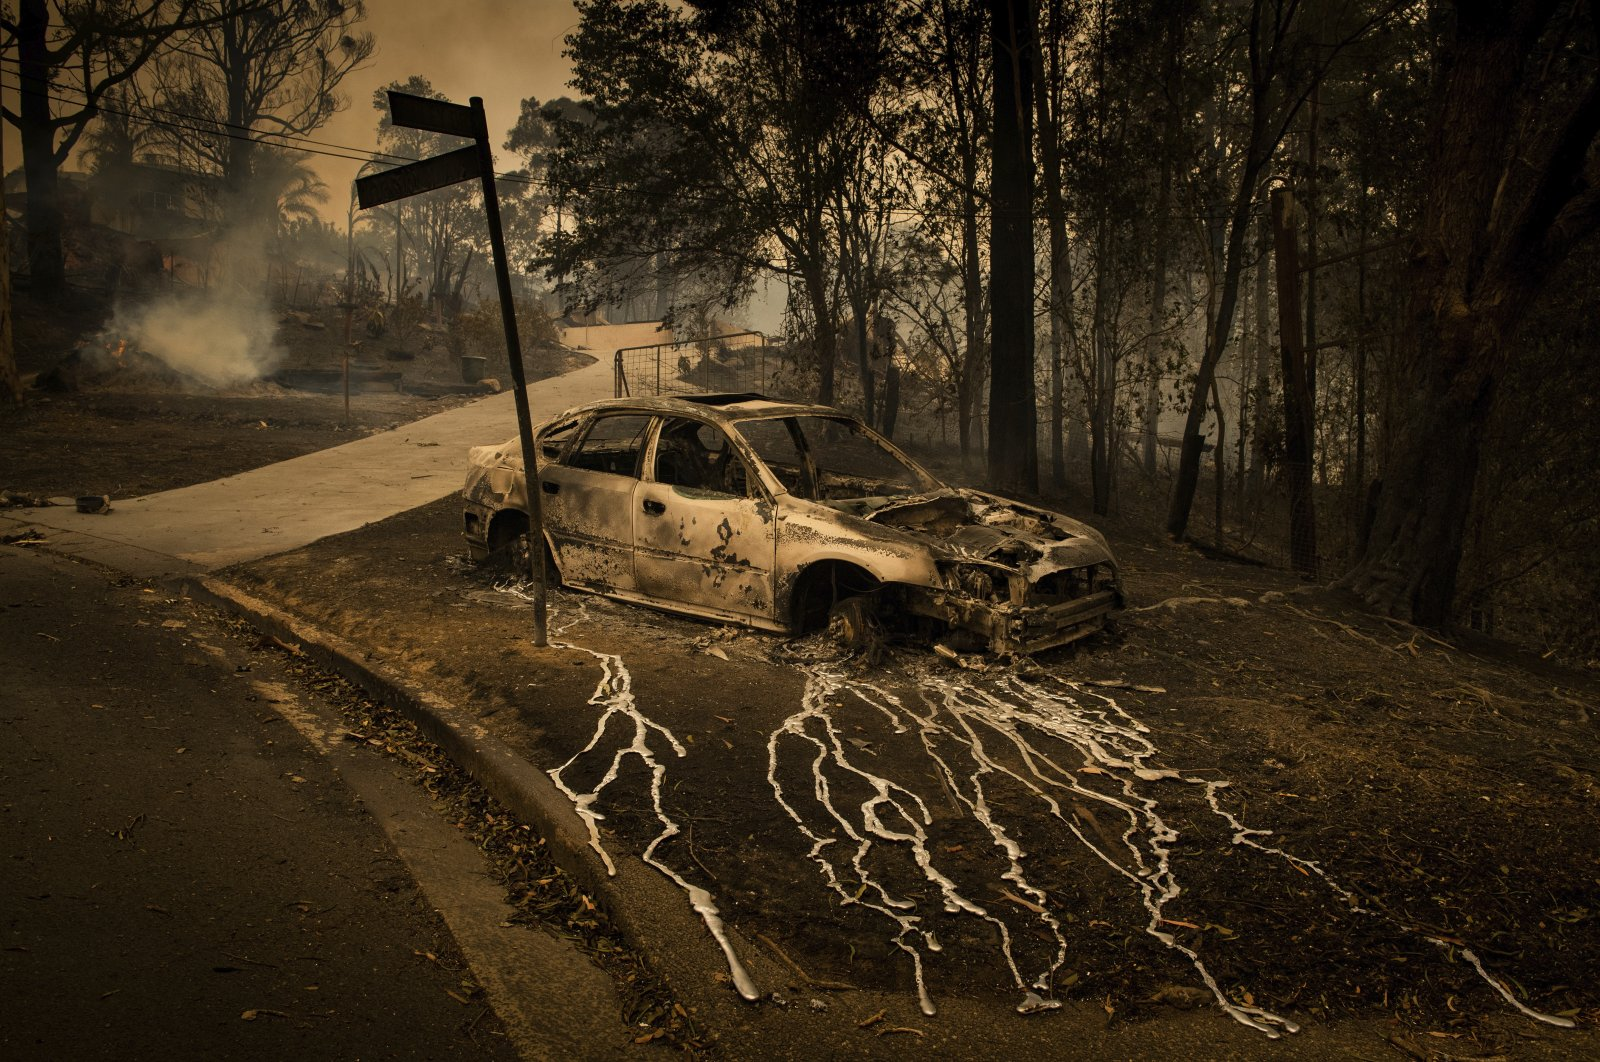 Aluminum, which melts at 660.3 C, has streamed from a burning car in Conjola Park, a town where bushfires razed more than 89 properties, in New South Wales, Australia, Dec. 31, 2019. (Matthew Abbott, Panos Pictures for The New York Times, World Press Photo via AP)